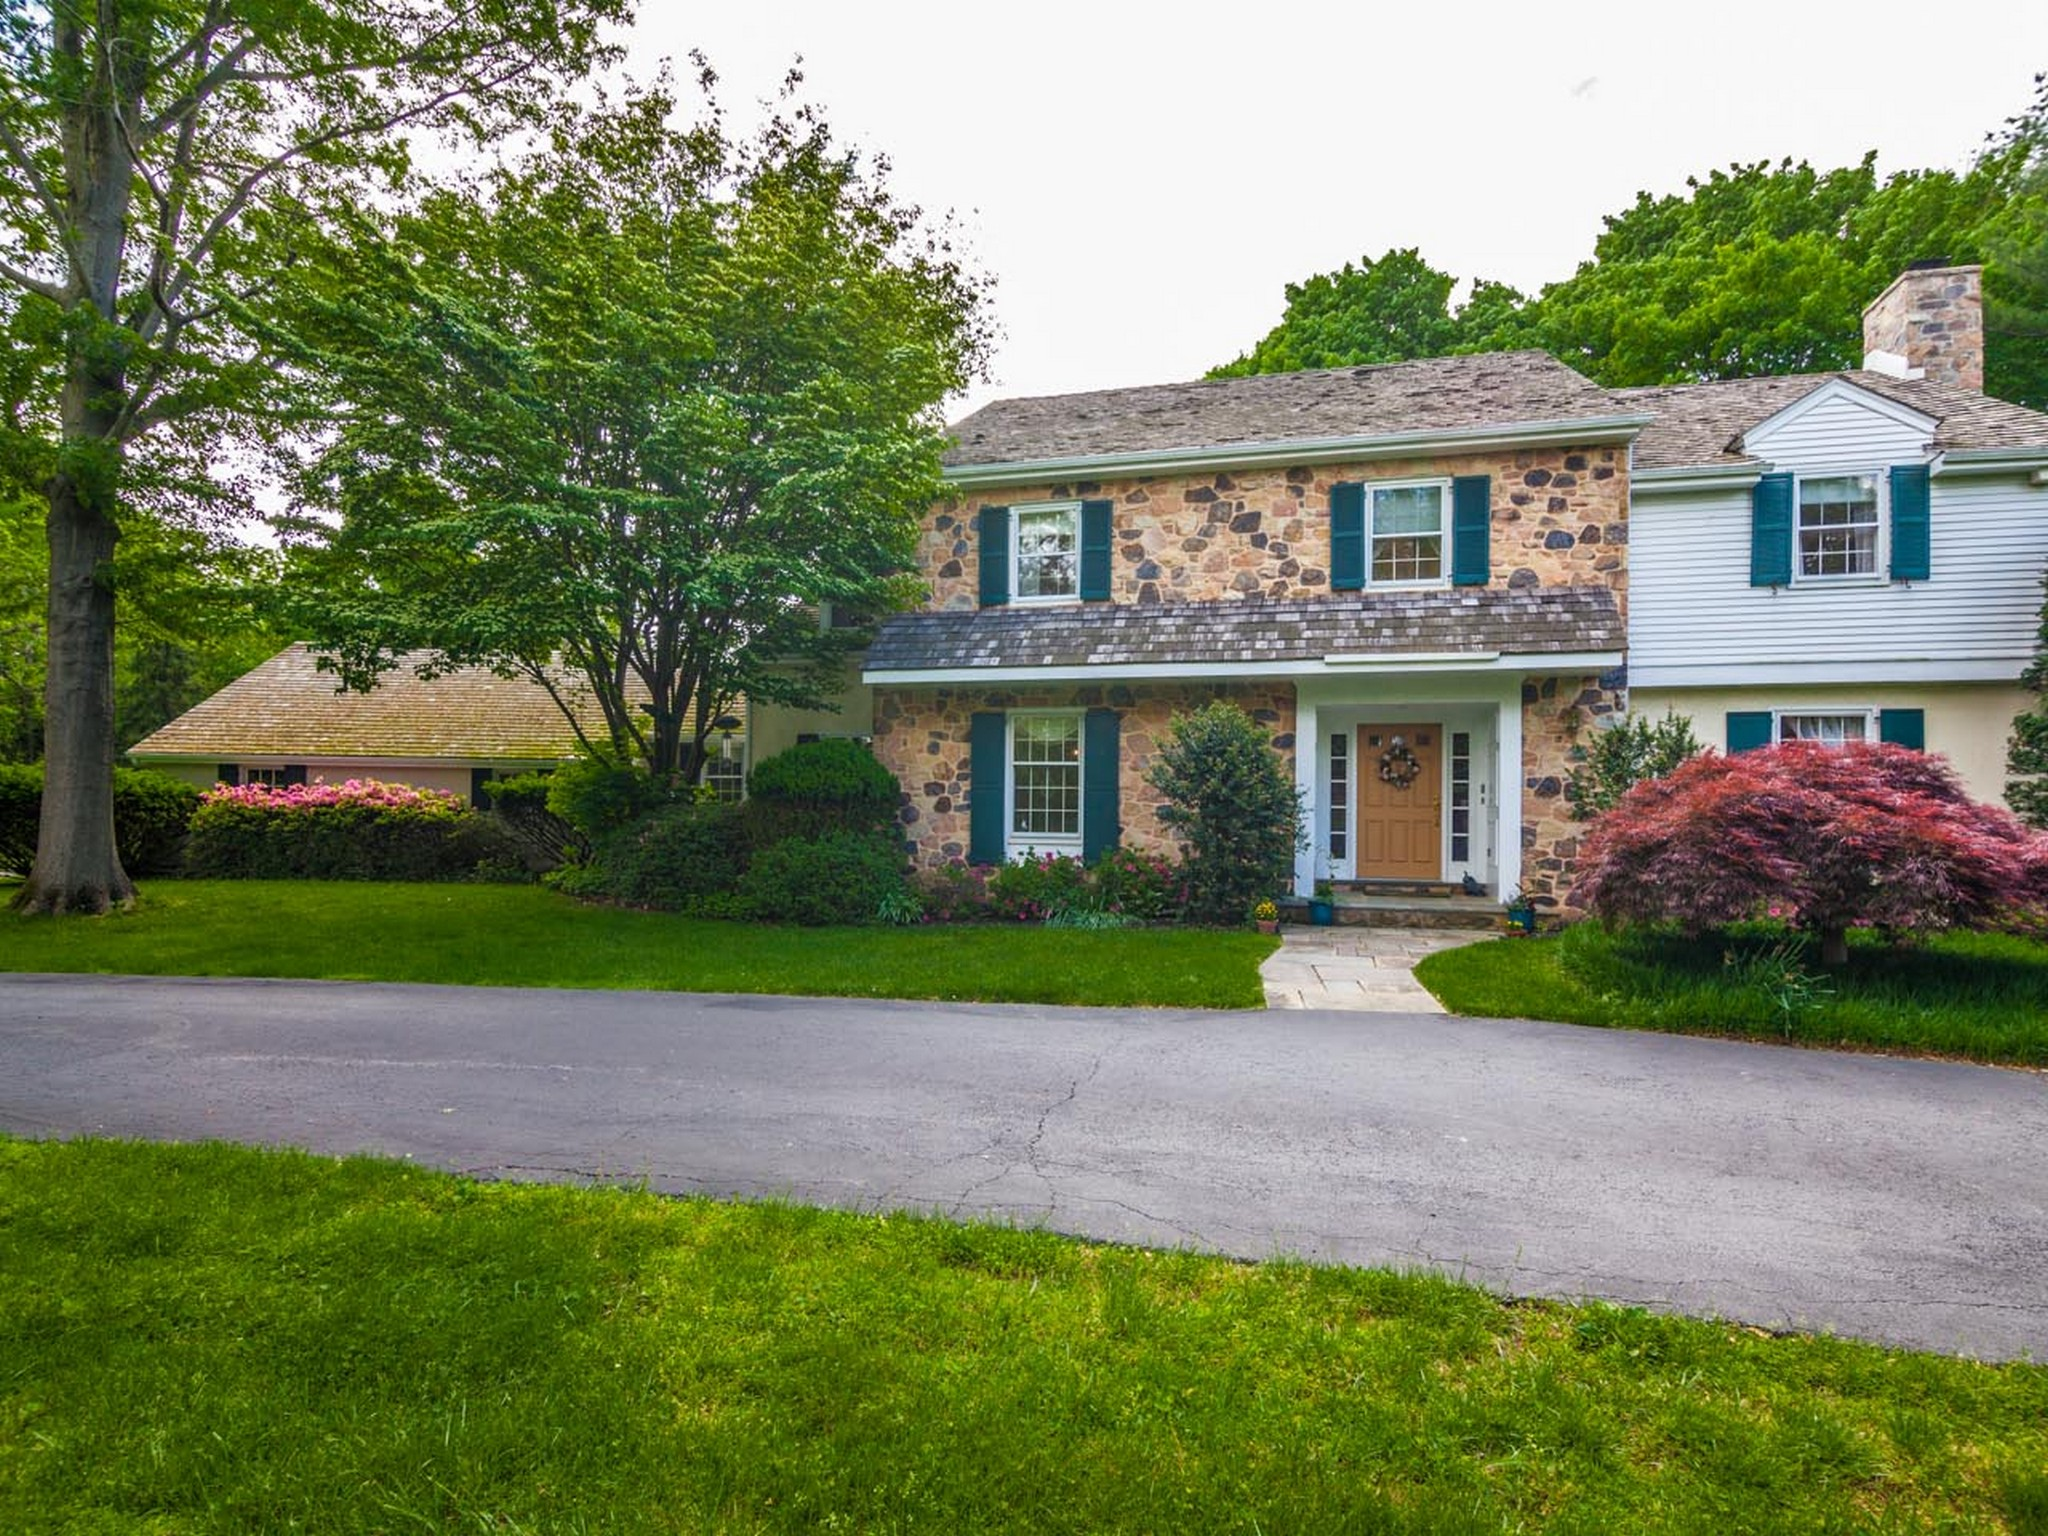 Single Family Home for Sale at 300 High Ridge Rd. Greenville, Delaware 19807 United States